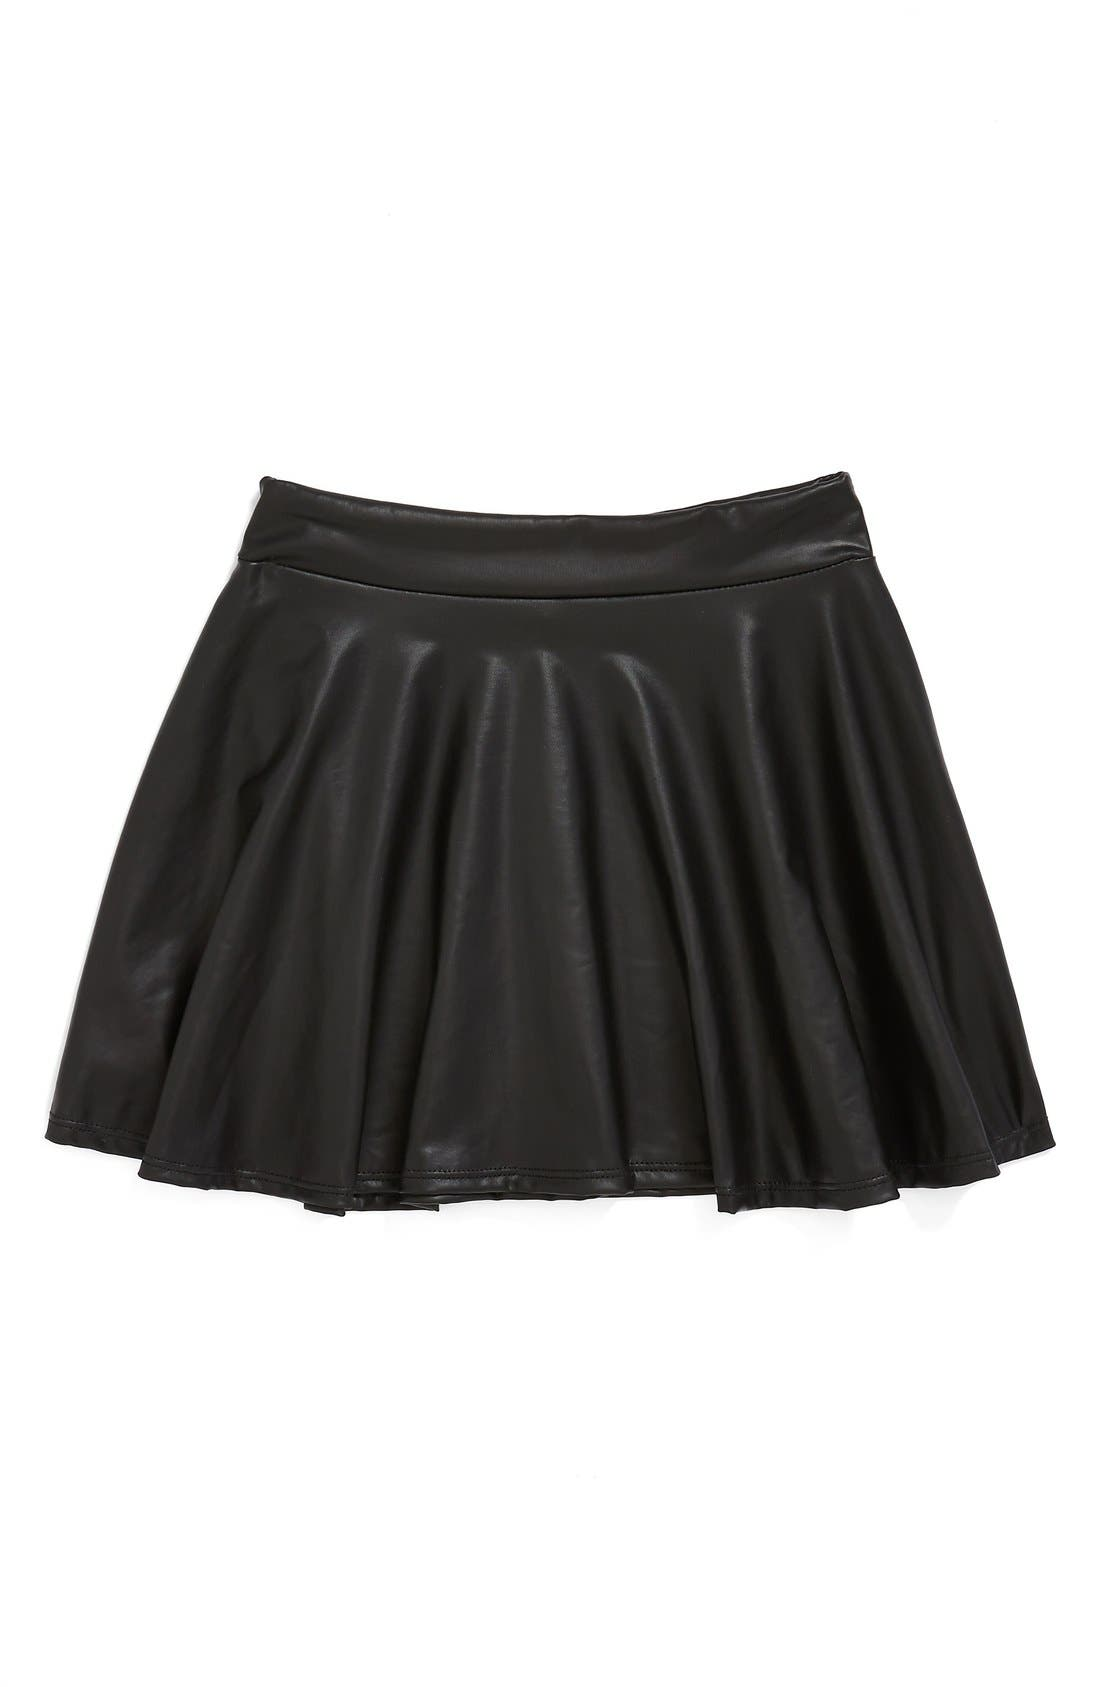 Main Image - Flowers by Zoe Faux Leather Pleated Skirt (Big Girls) (Online Only)